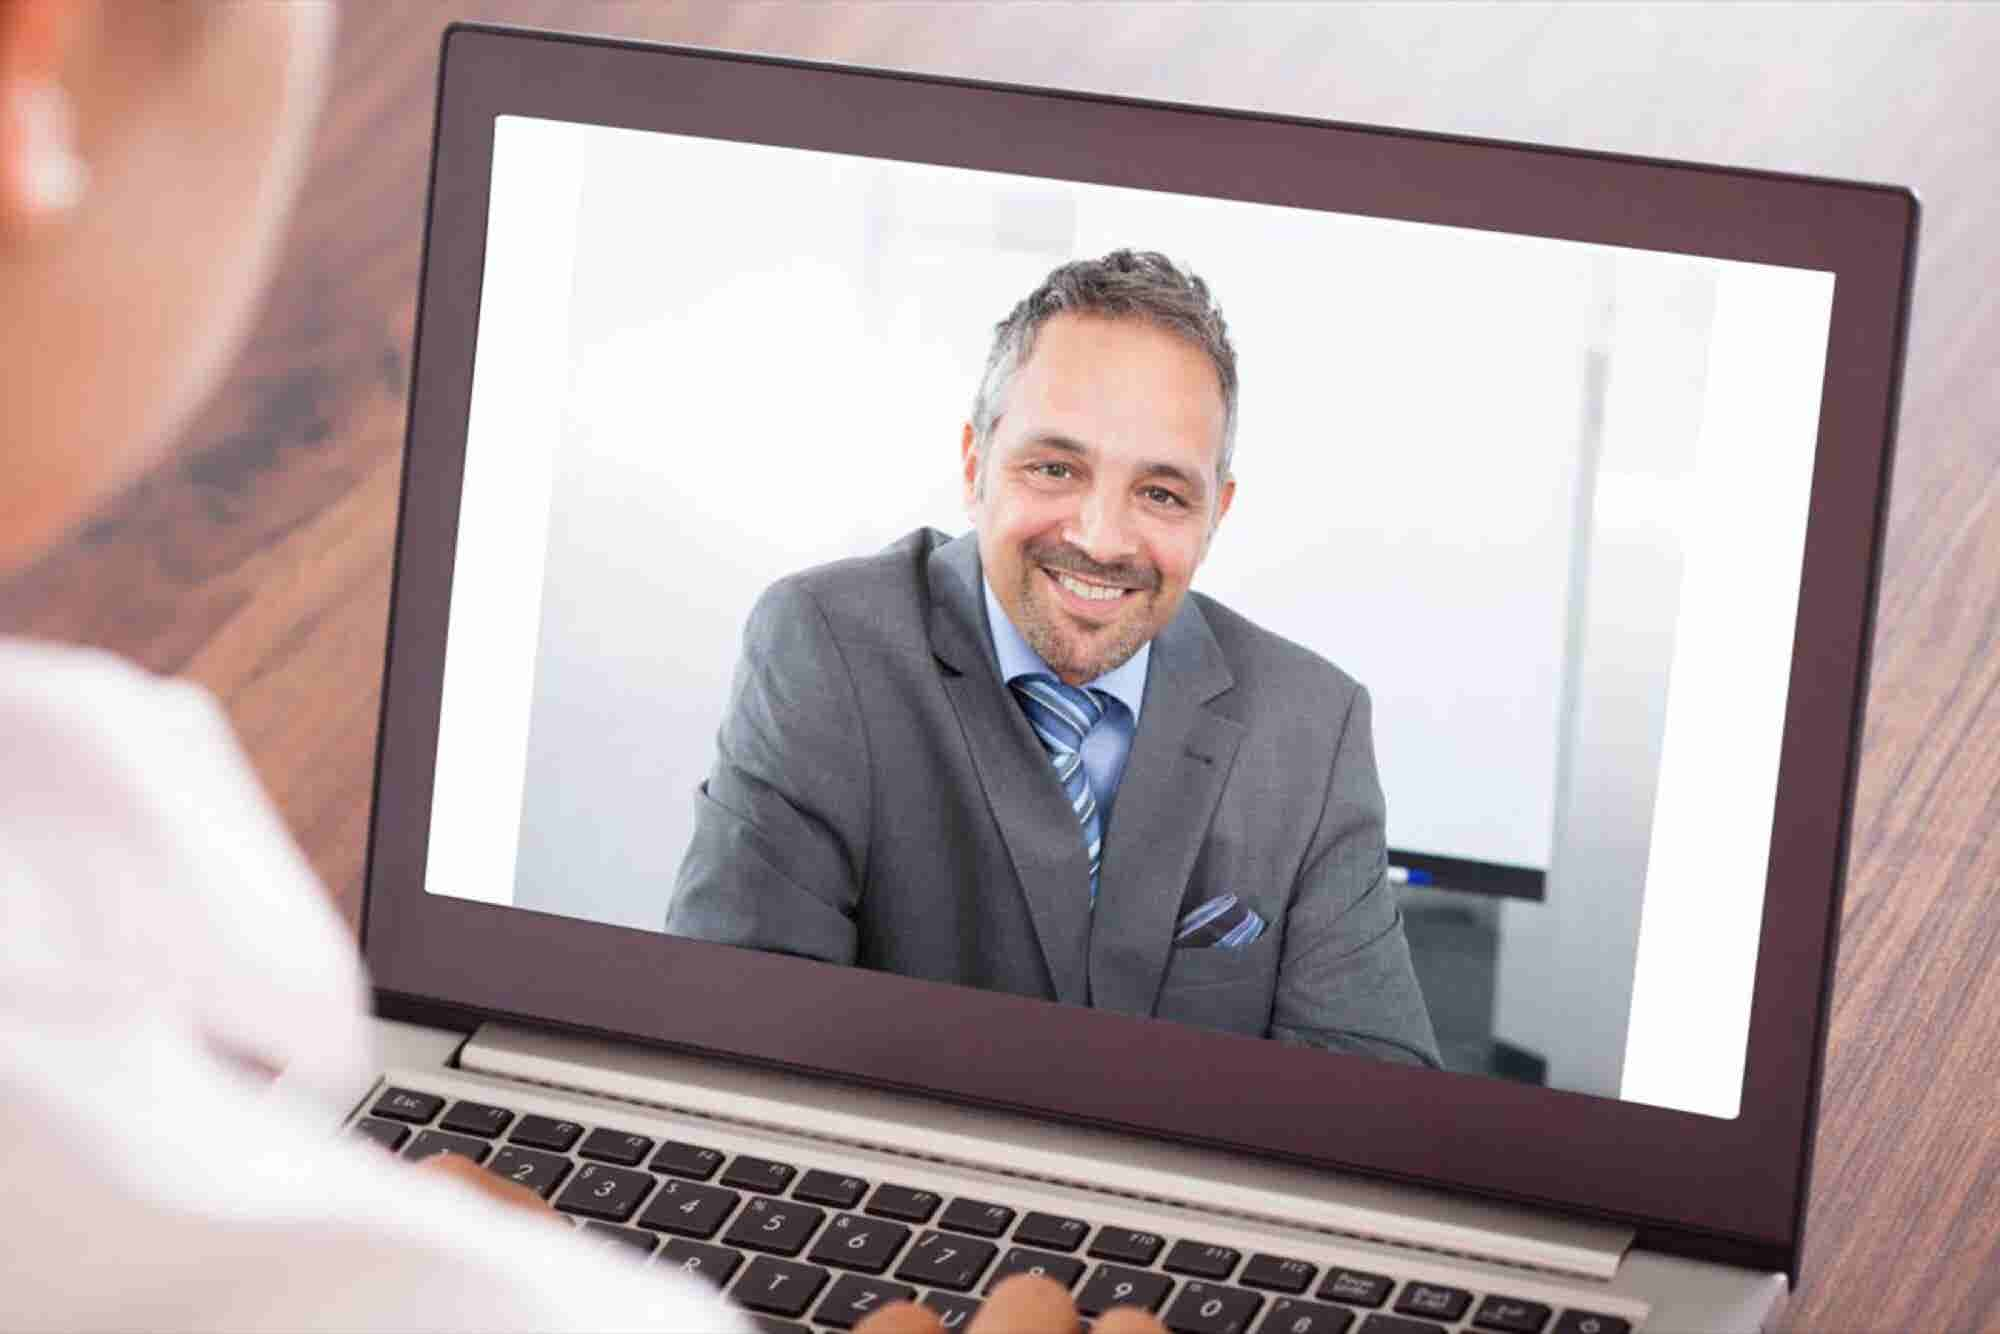 7 Uses of Internal Company Videos That Can Boost Productivity and Coll...